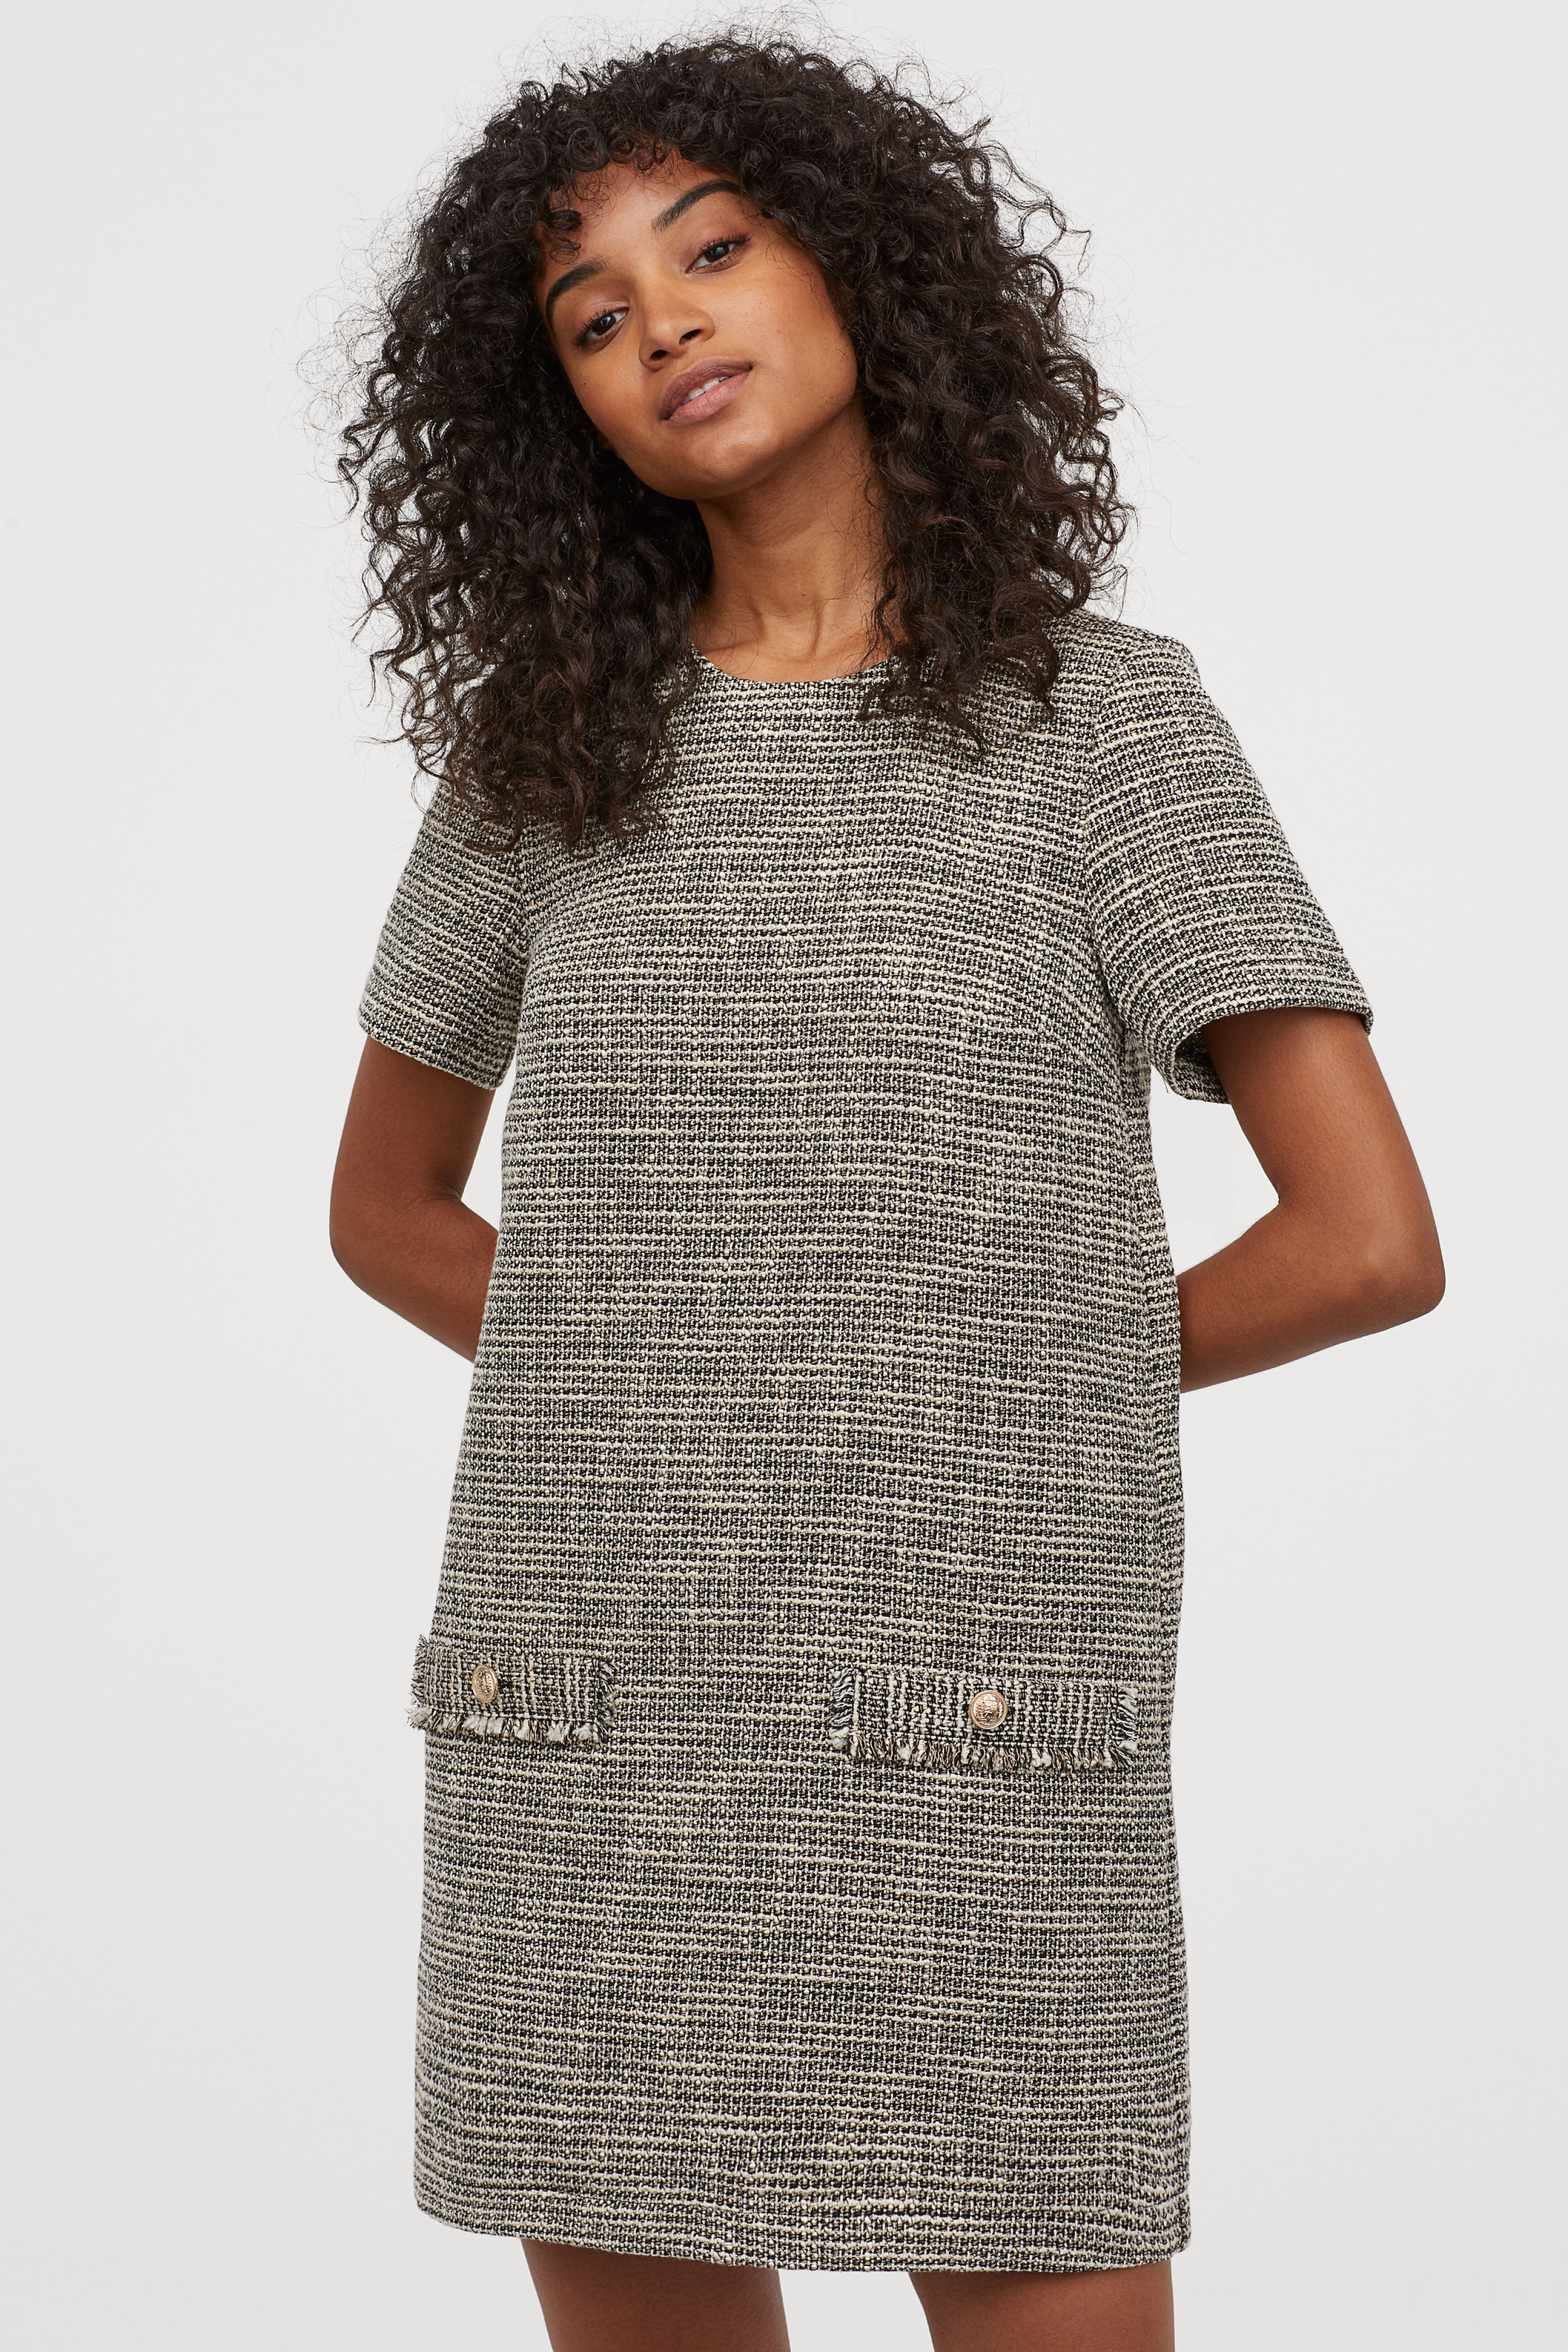 Textured Weave Short Dress